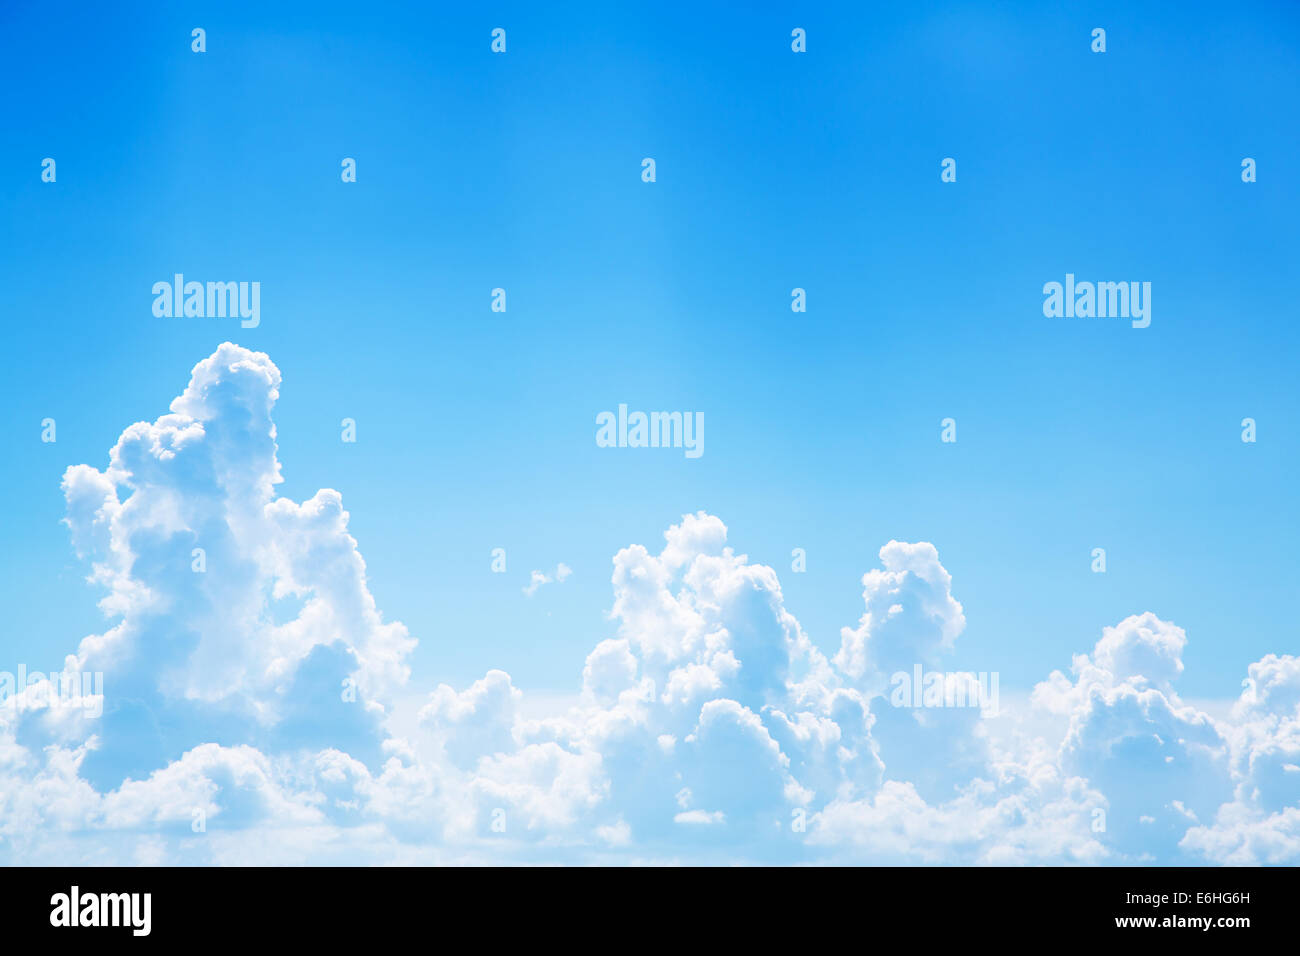 Blue Bright Sky Background With Clouds And Emotional Mood For Dreams Mourning Death Concepts Cloudy Texture